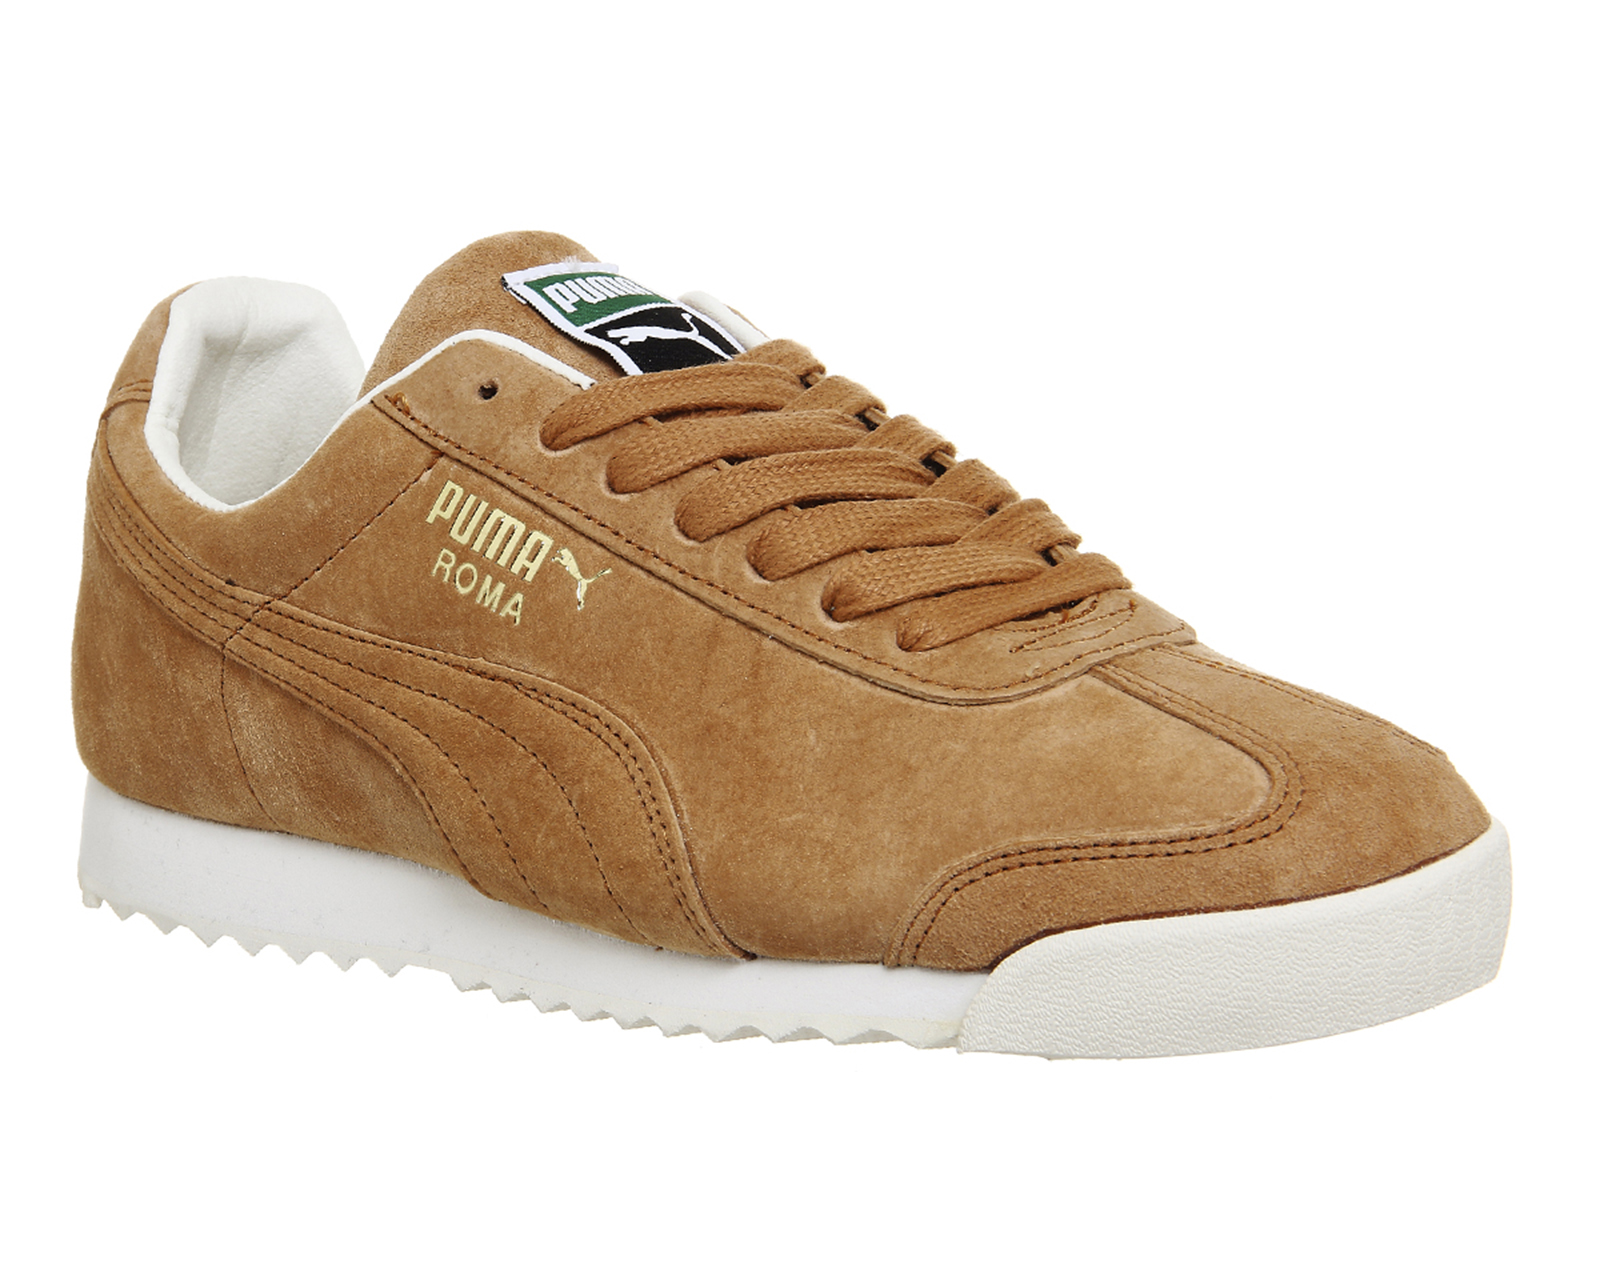 Puma-Roma-SAND-OFF-WHITE-Trainers-Shoes